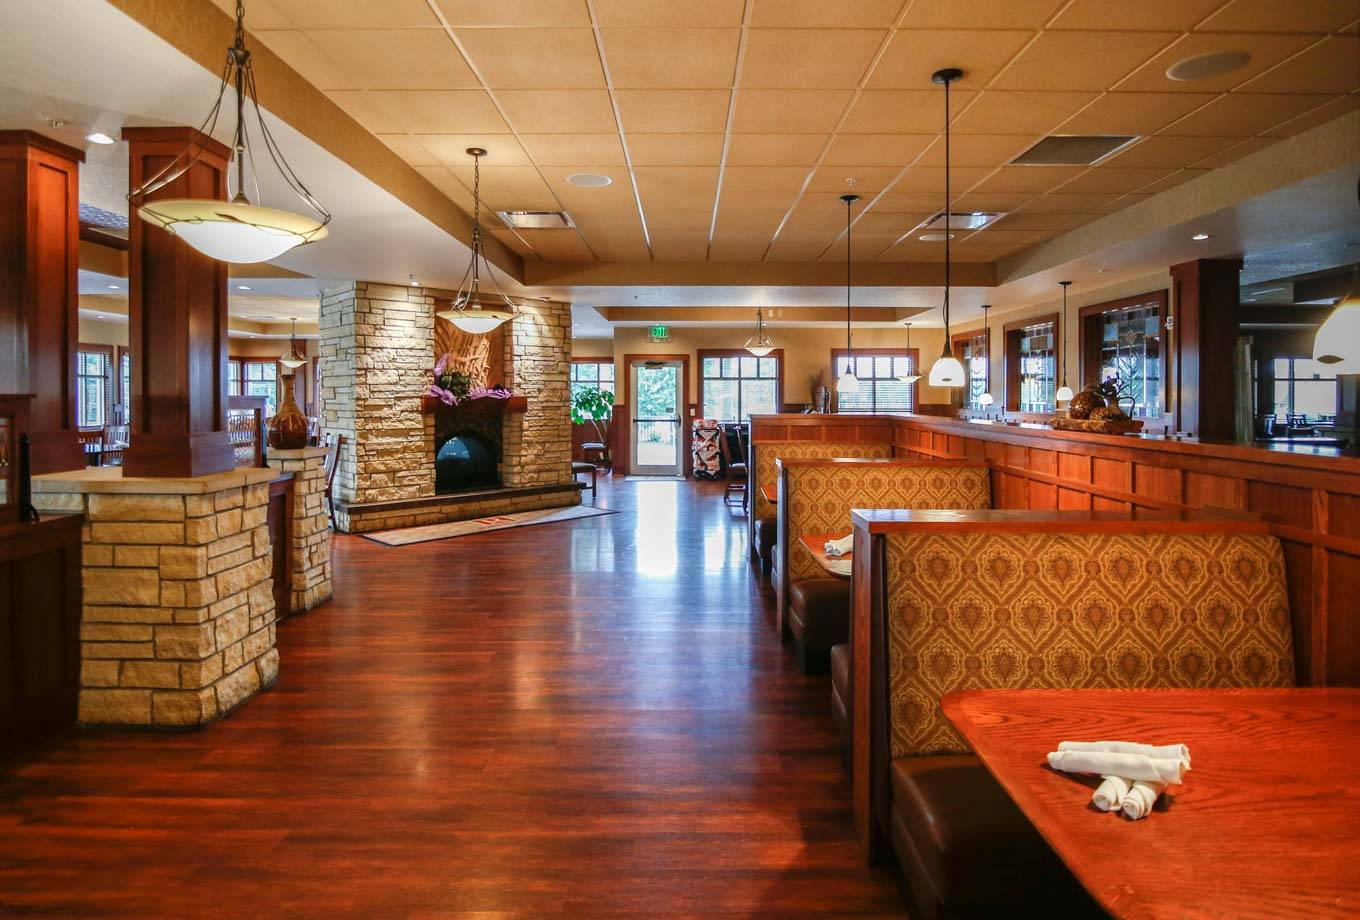 Rathbun Lakeshore Grille restaurant at Honey Creek Resort is open breakfast, lunch, and dinner